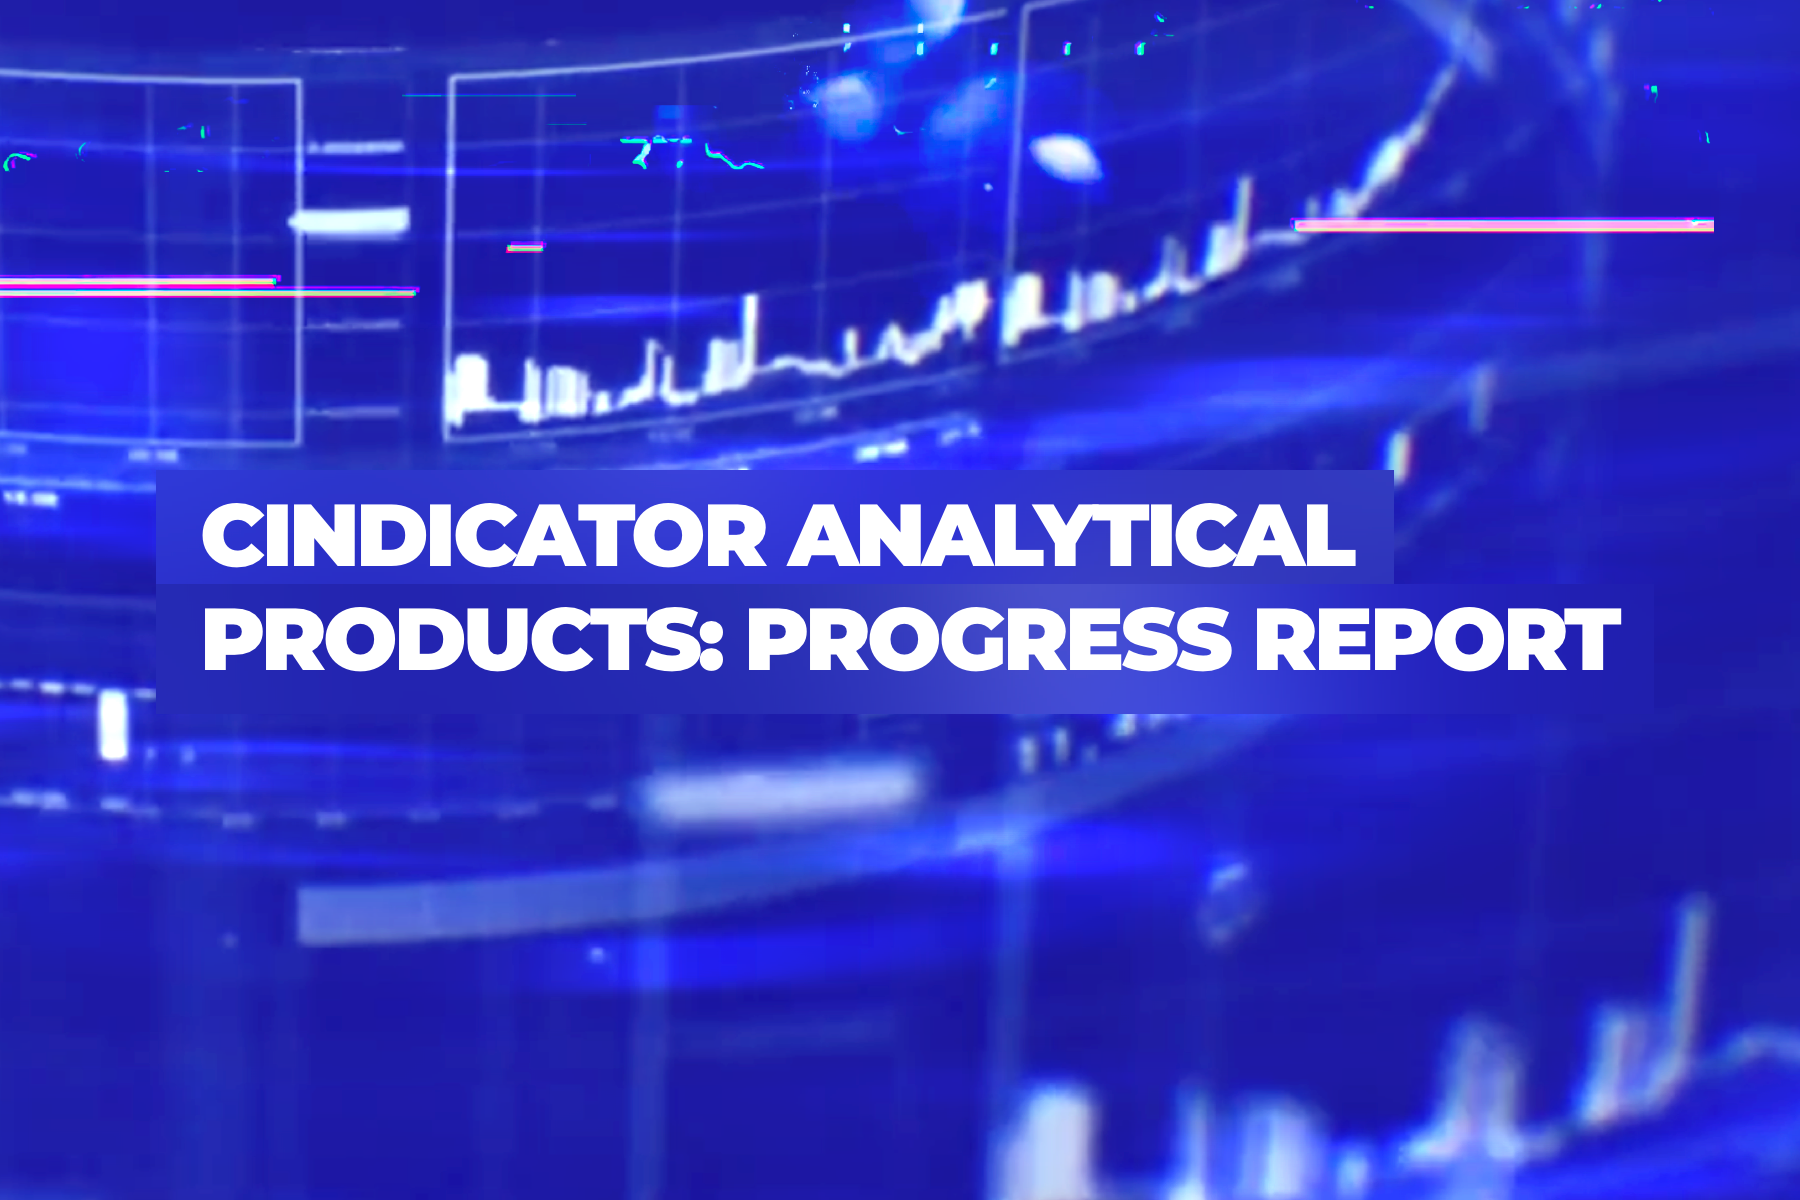 Cindicator analytical products: progress report and updated priorities